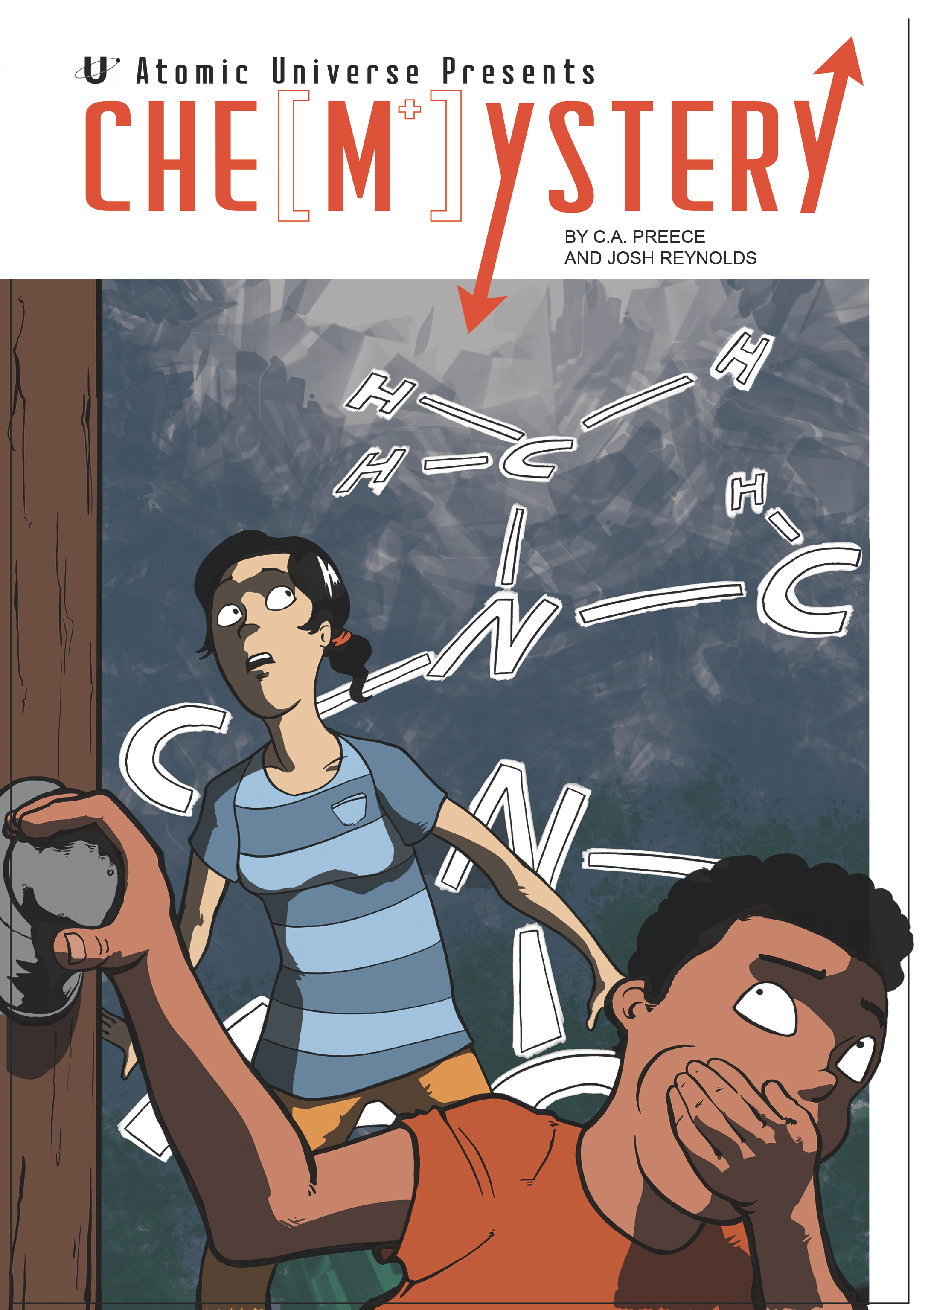 chemystery cover